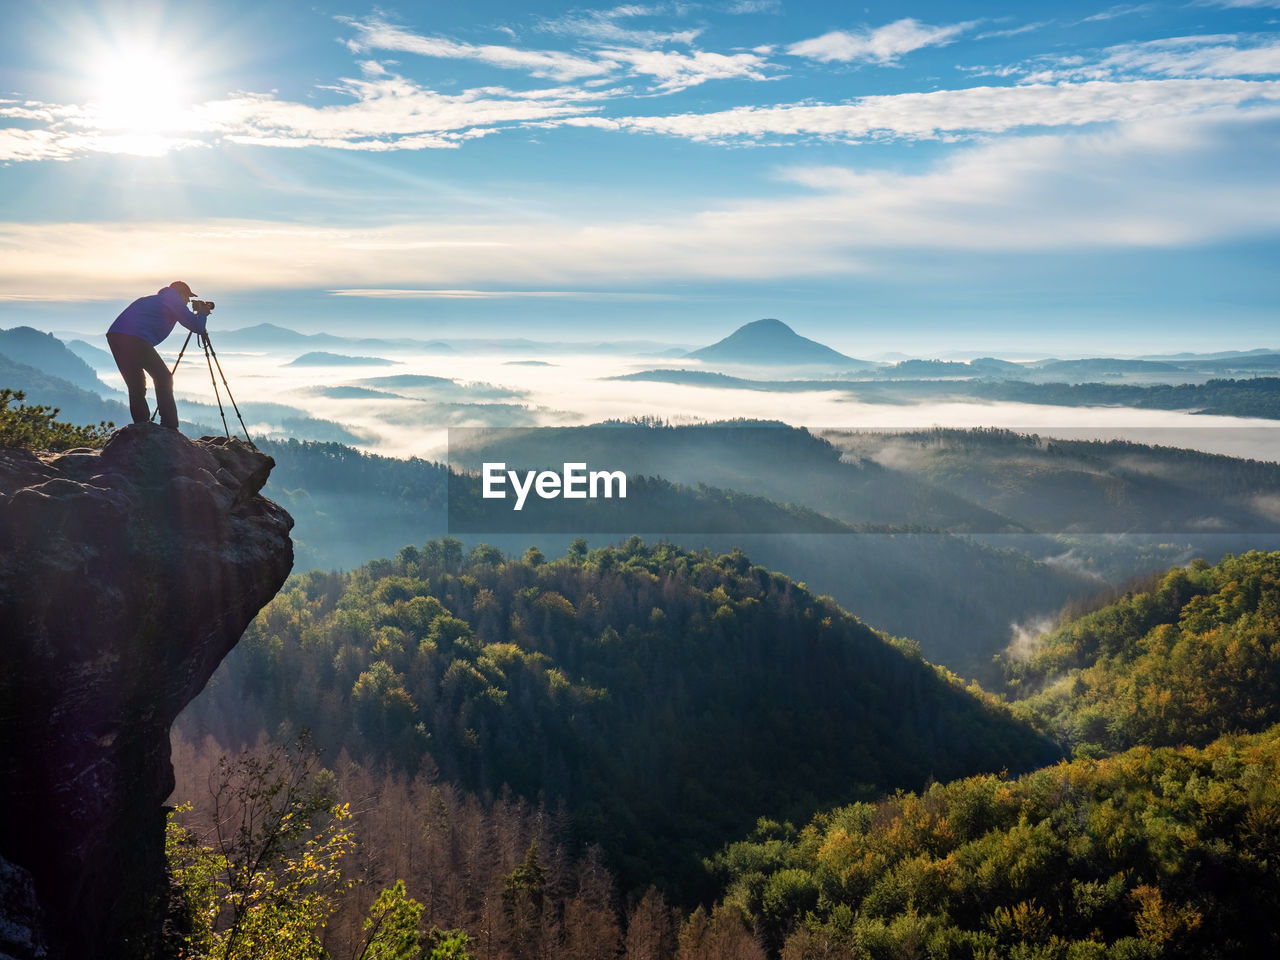 Photographer on mountain witch through viewfinder. morning landscape from top of the mountain